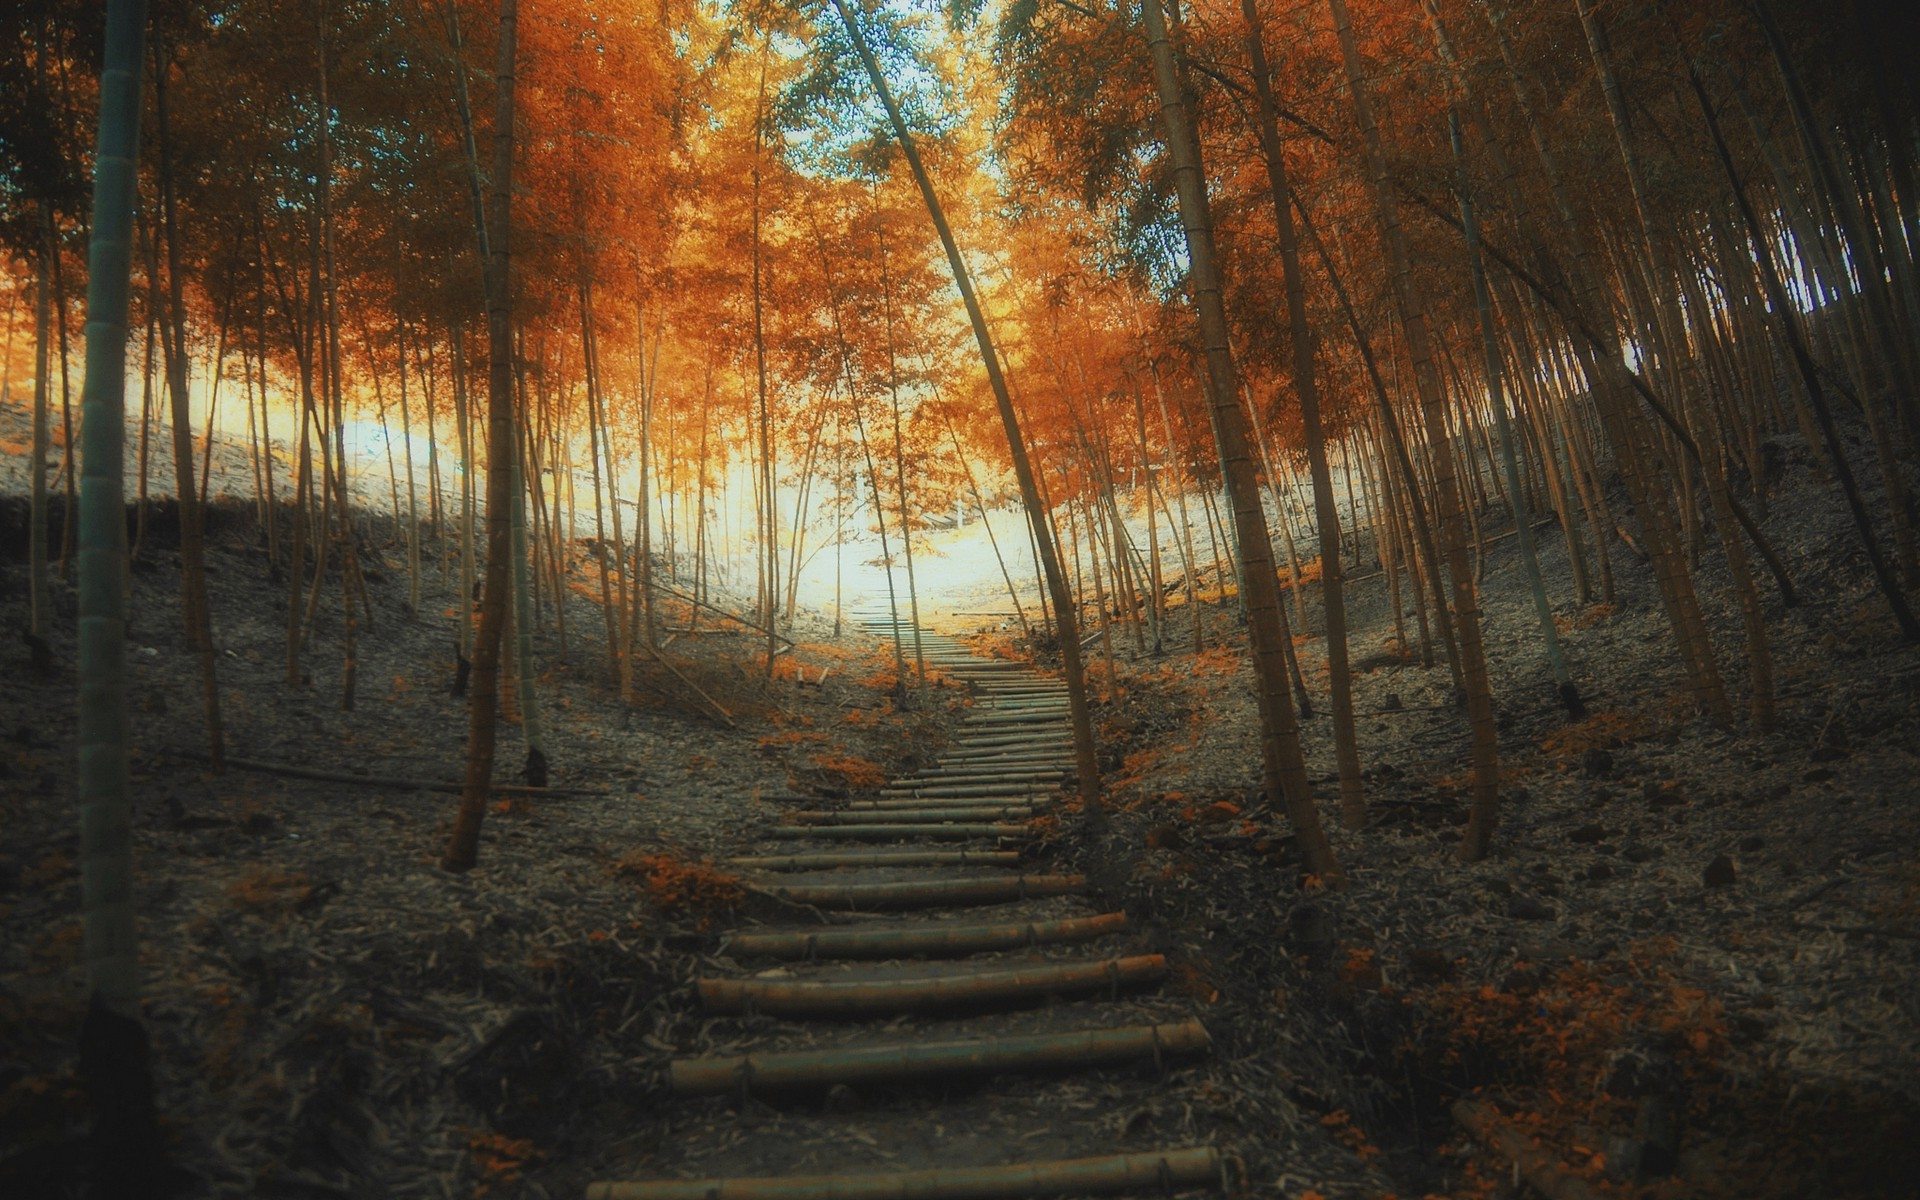 Fall Trees Wallpaper For Desktop Nature Landscape Path Fall Stairs Trees Bamboo Mist